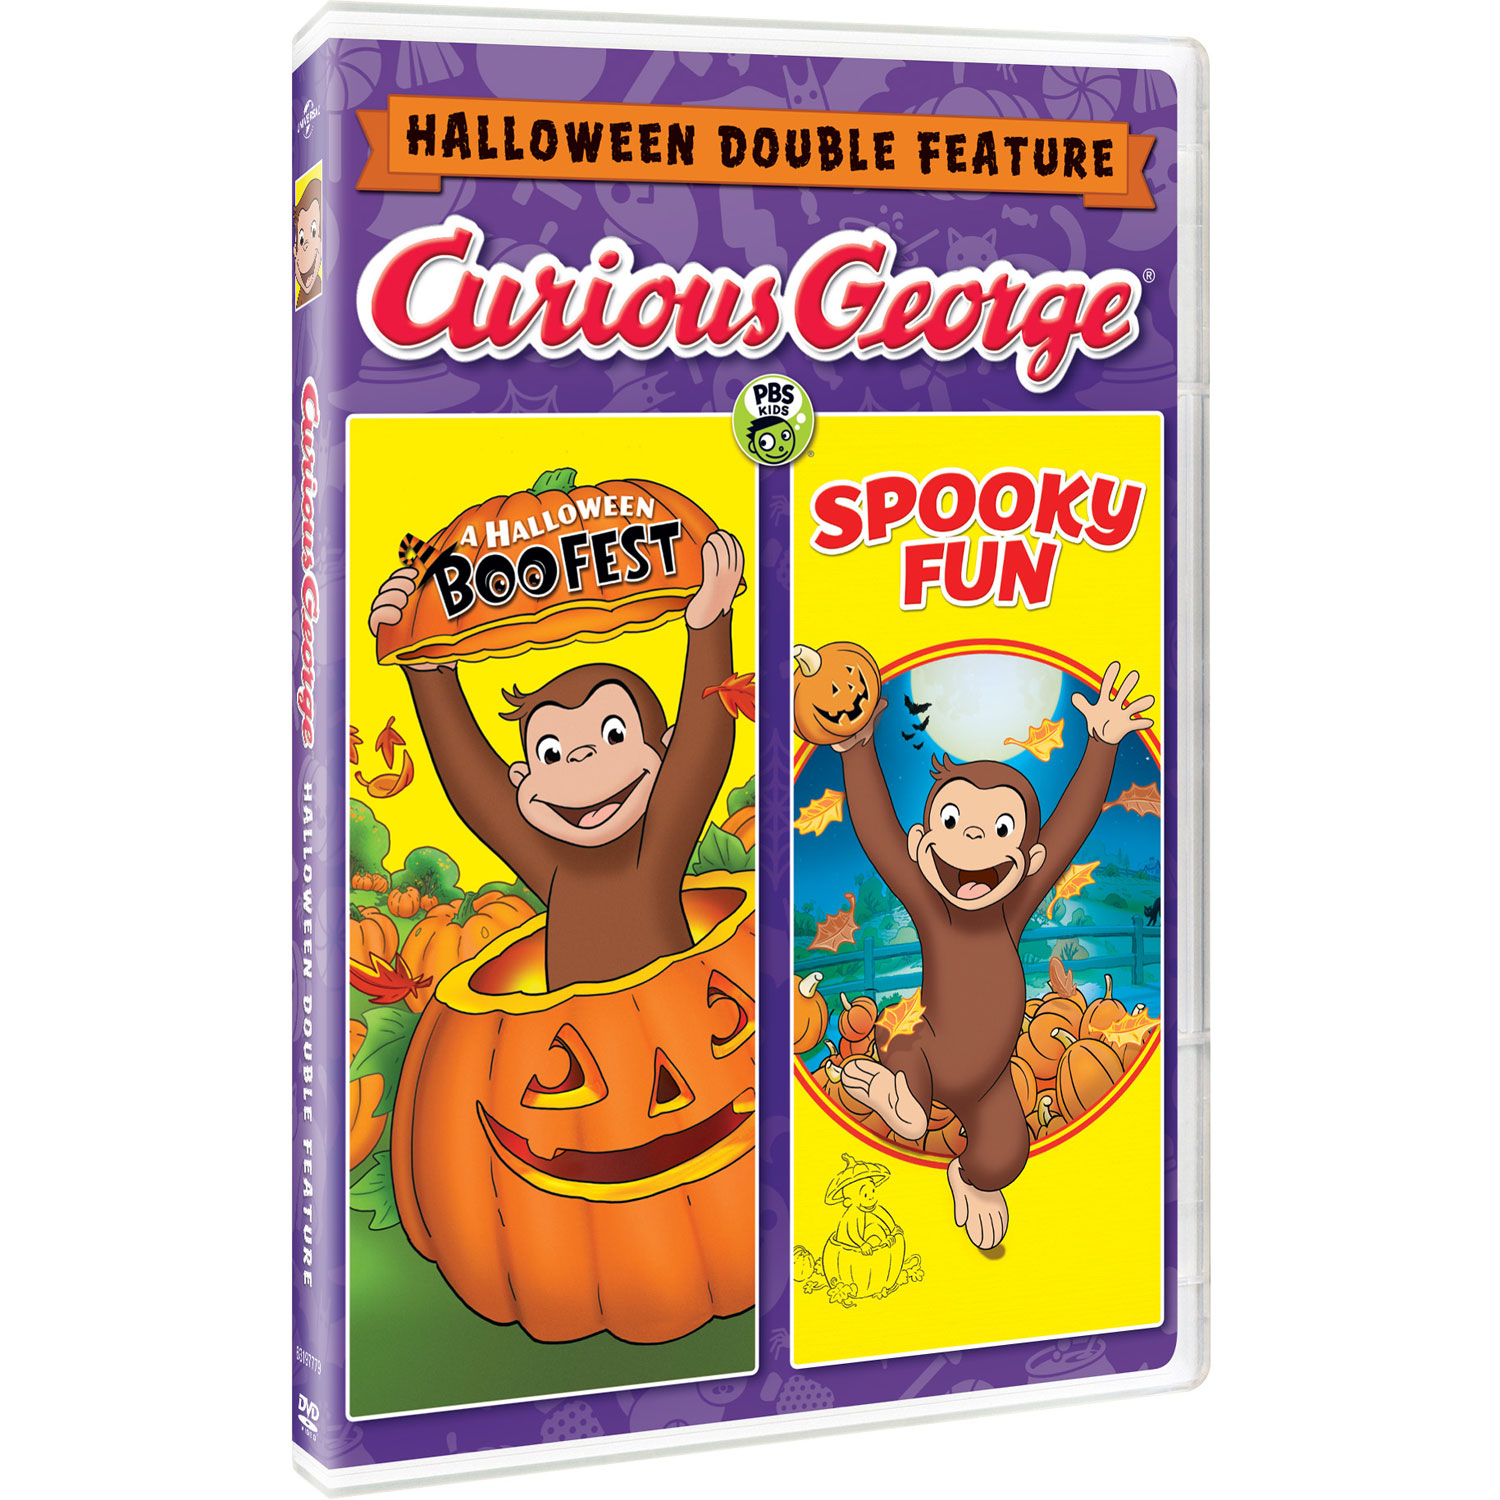 curious george halloween boofest / spooky fun (english) : family